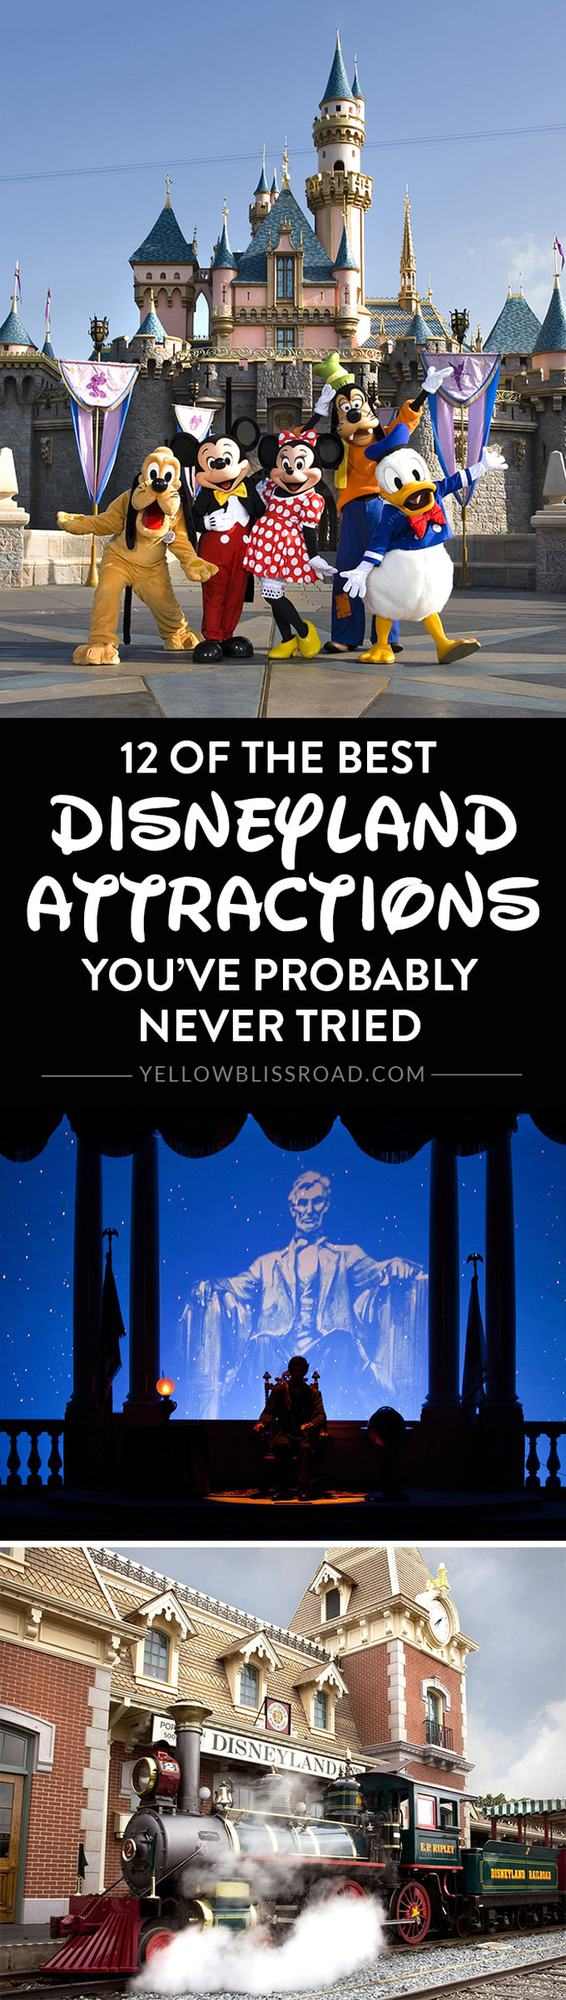 12 Best Disneyland Resort Attractions You've Probably Never Tried